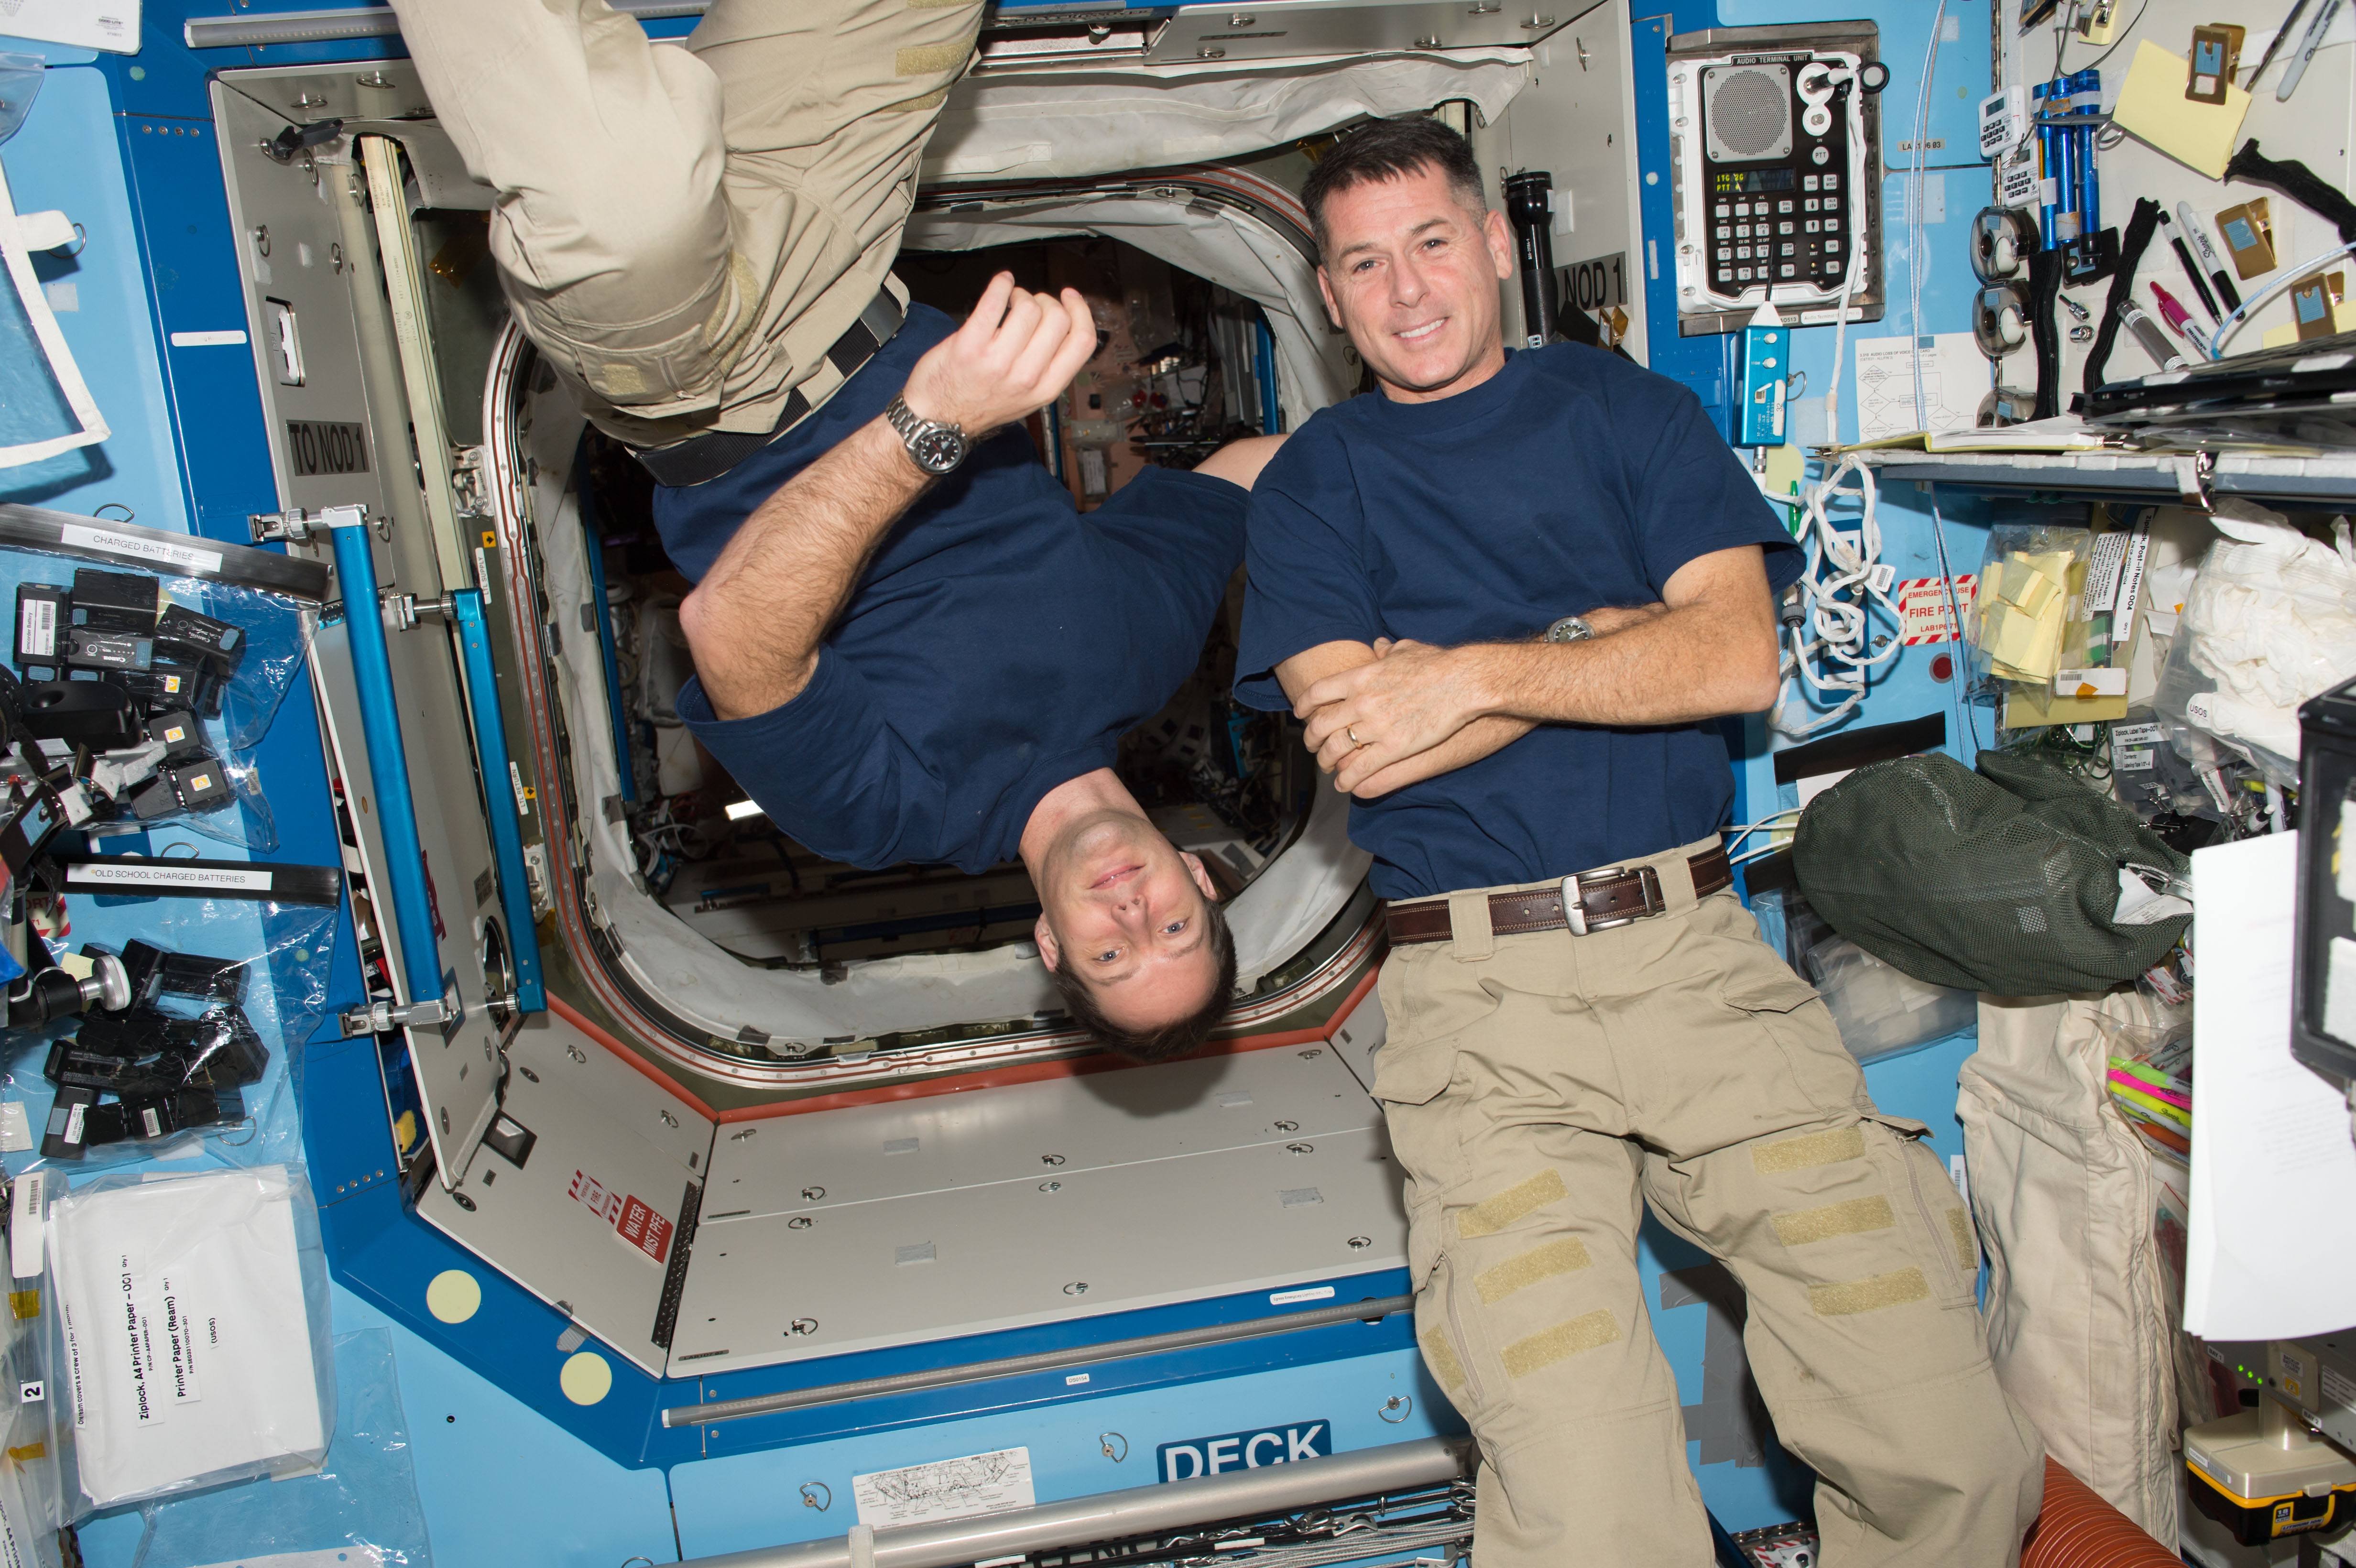 Texas Students to Hear from Astronauts on Space Station